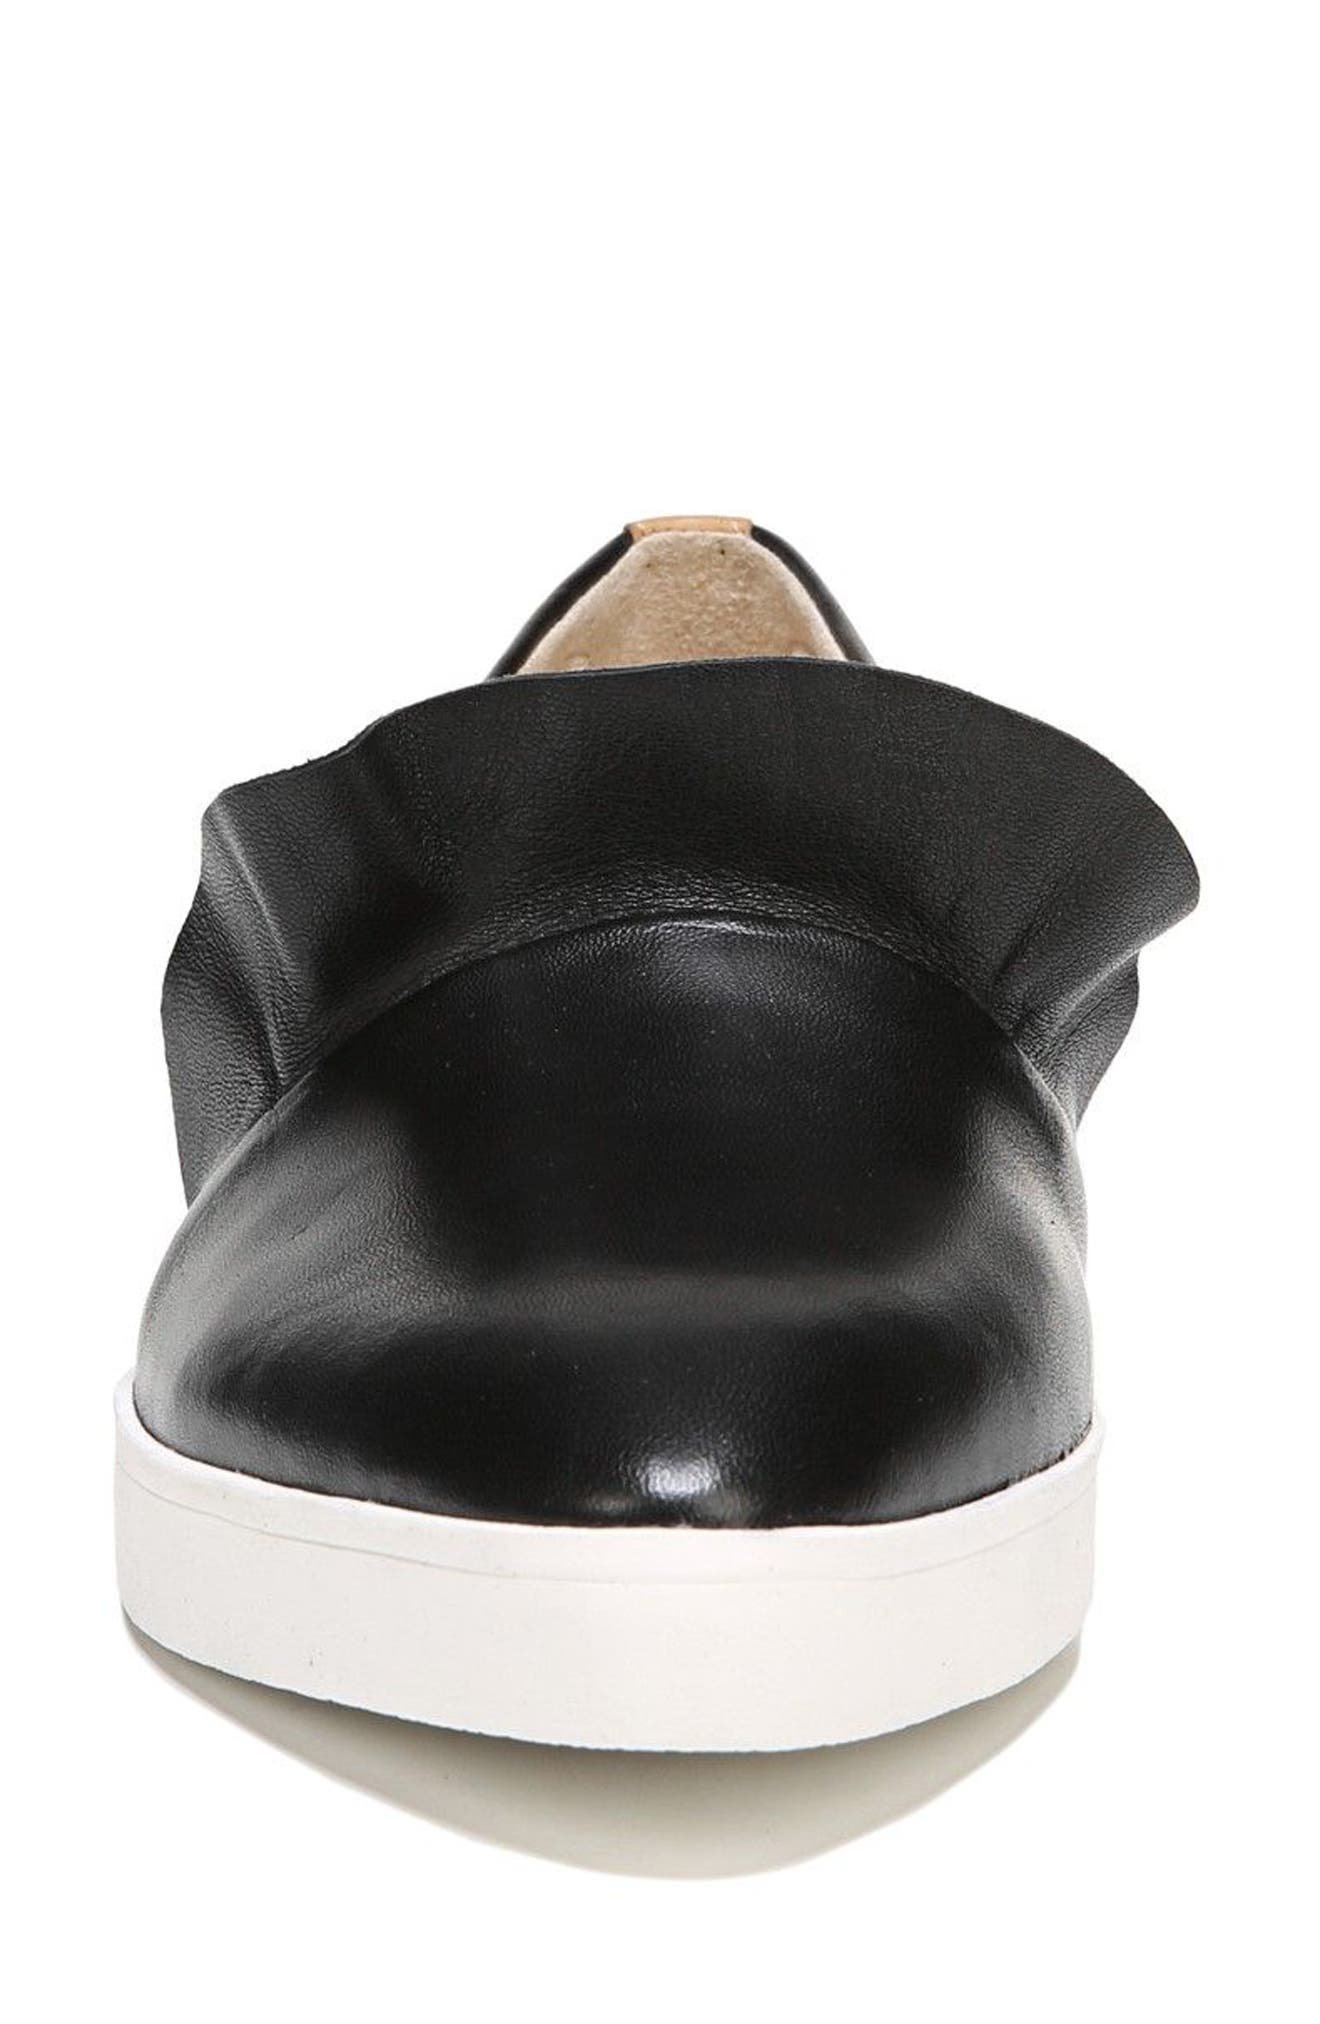 Vienna Slip-On Sneaker,                             Alternate thumbnail 10, color,